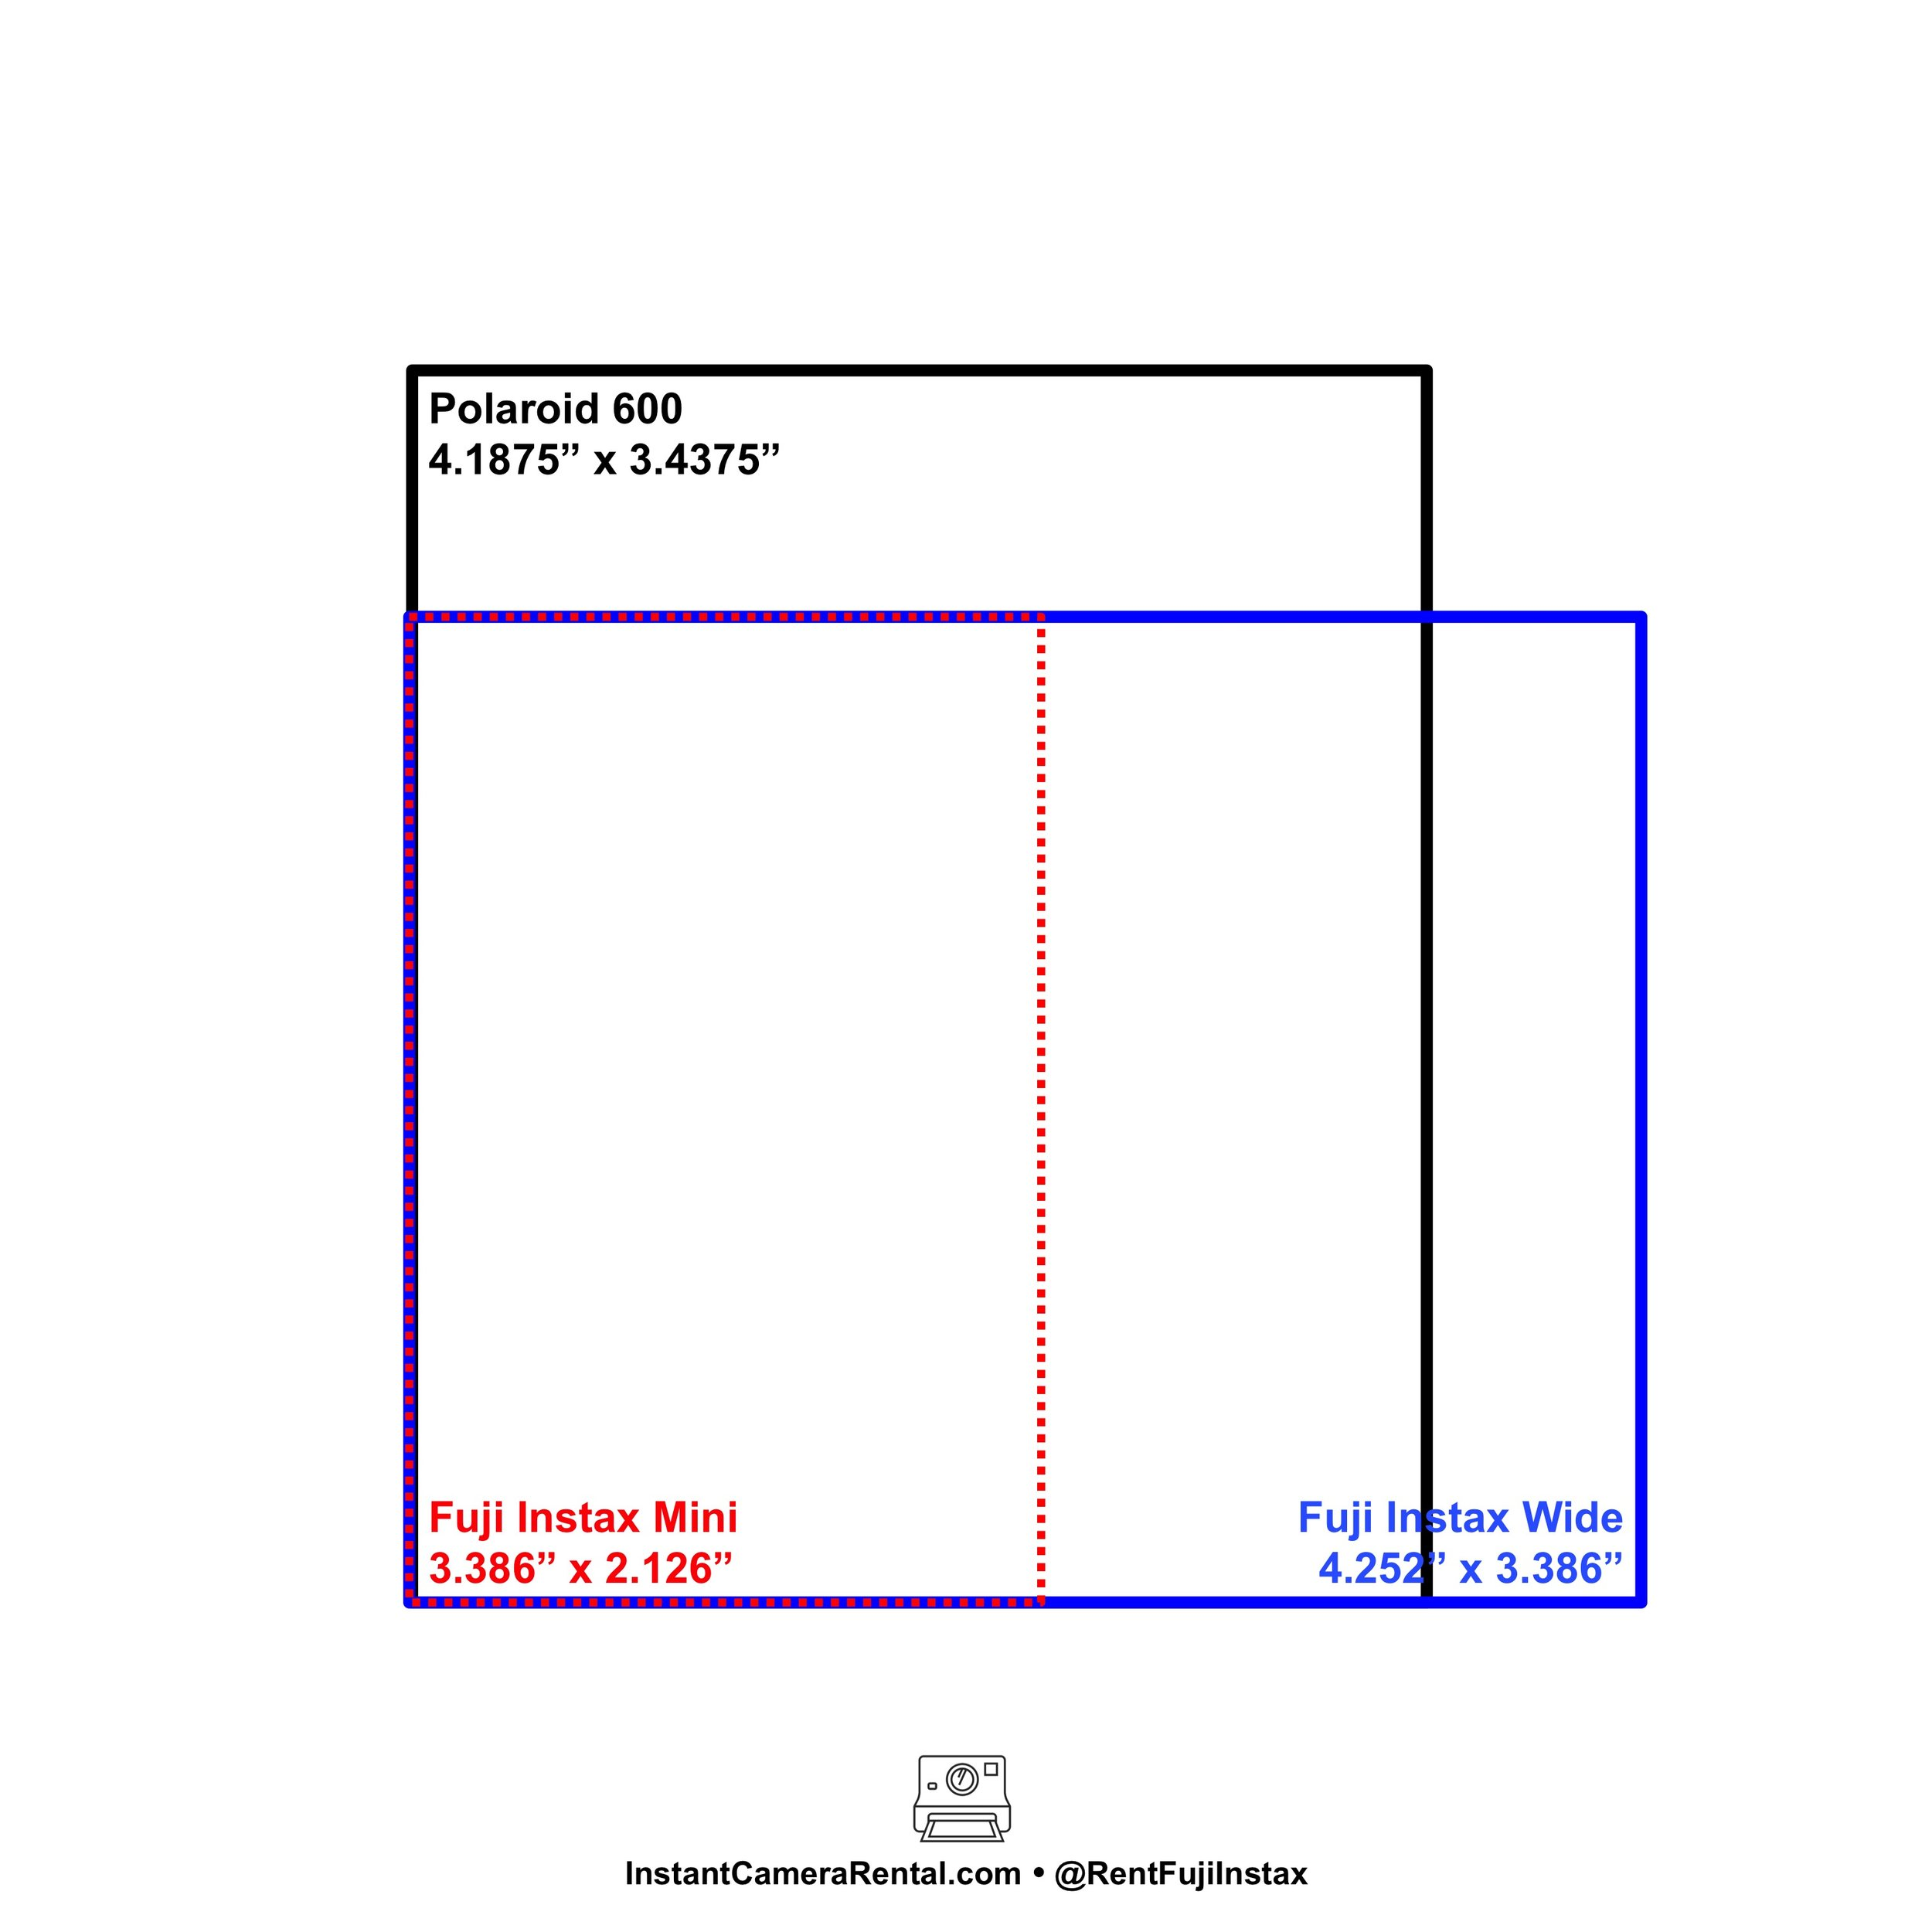 Fuji Instax Photo Sizes vs. Polaroid 600 Overlay